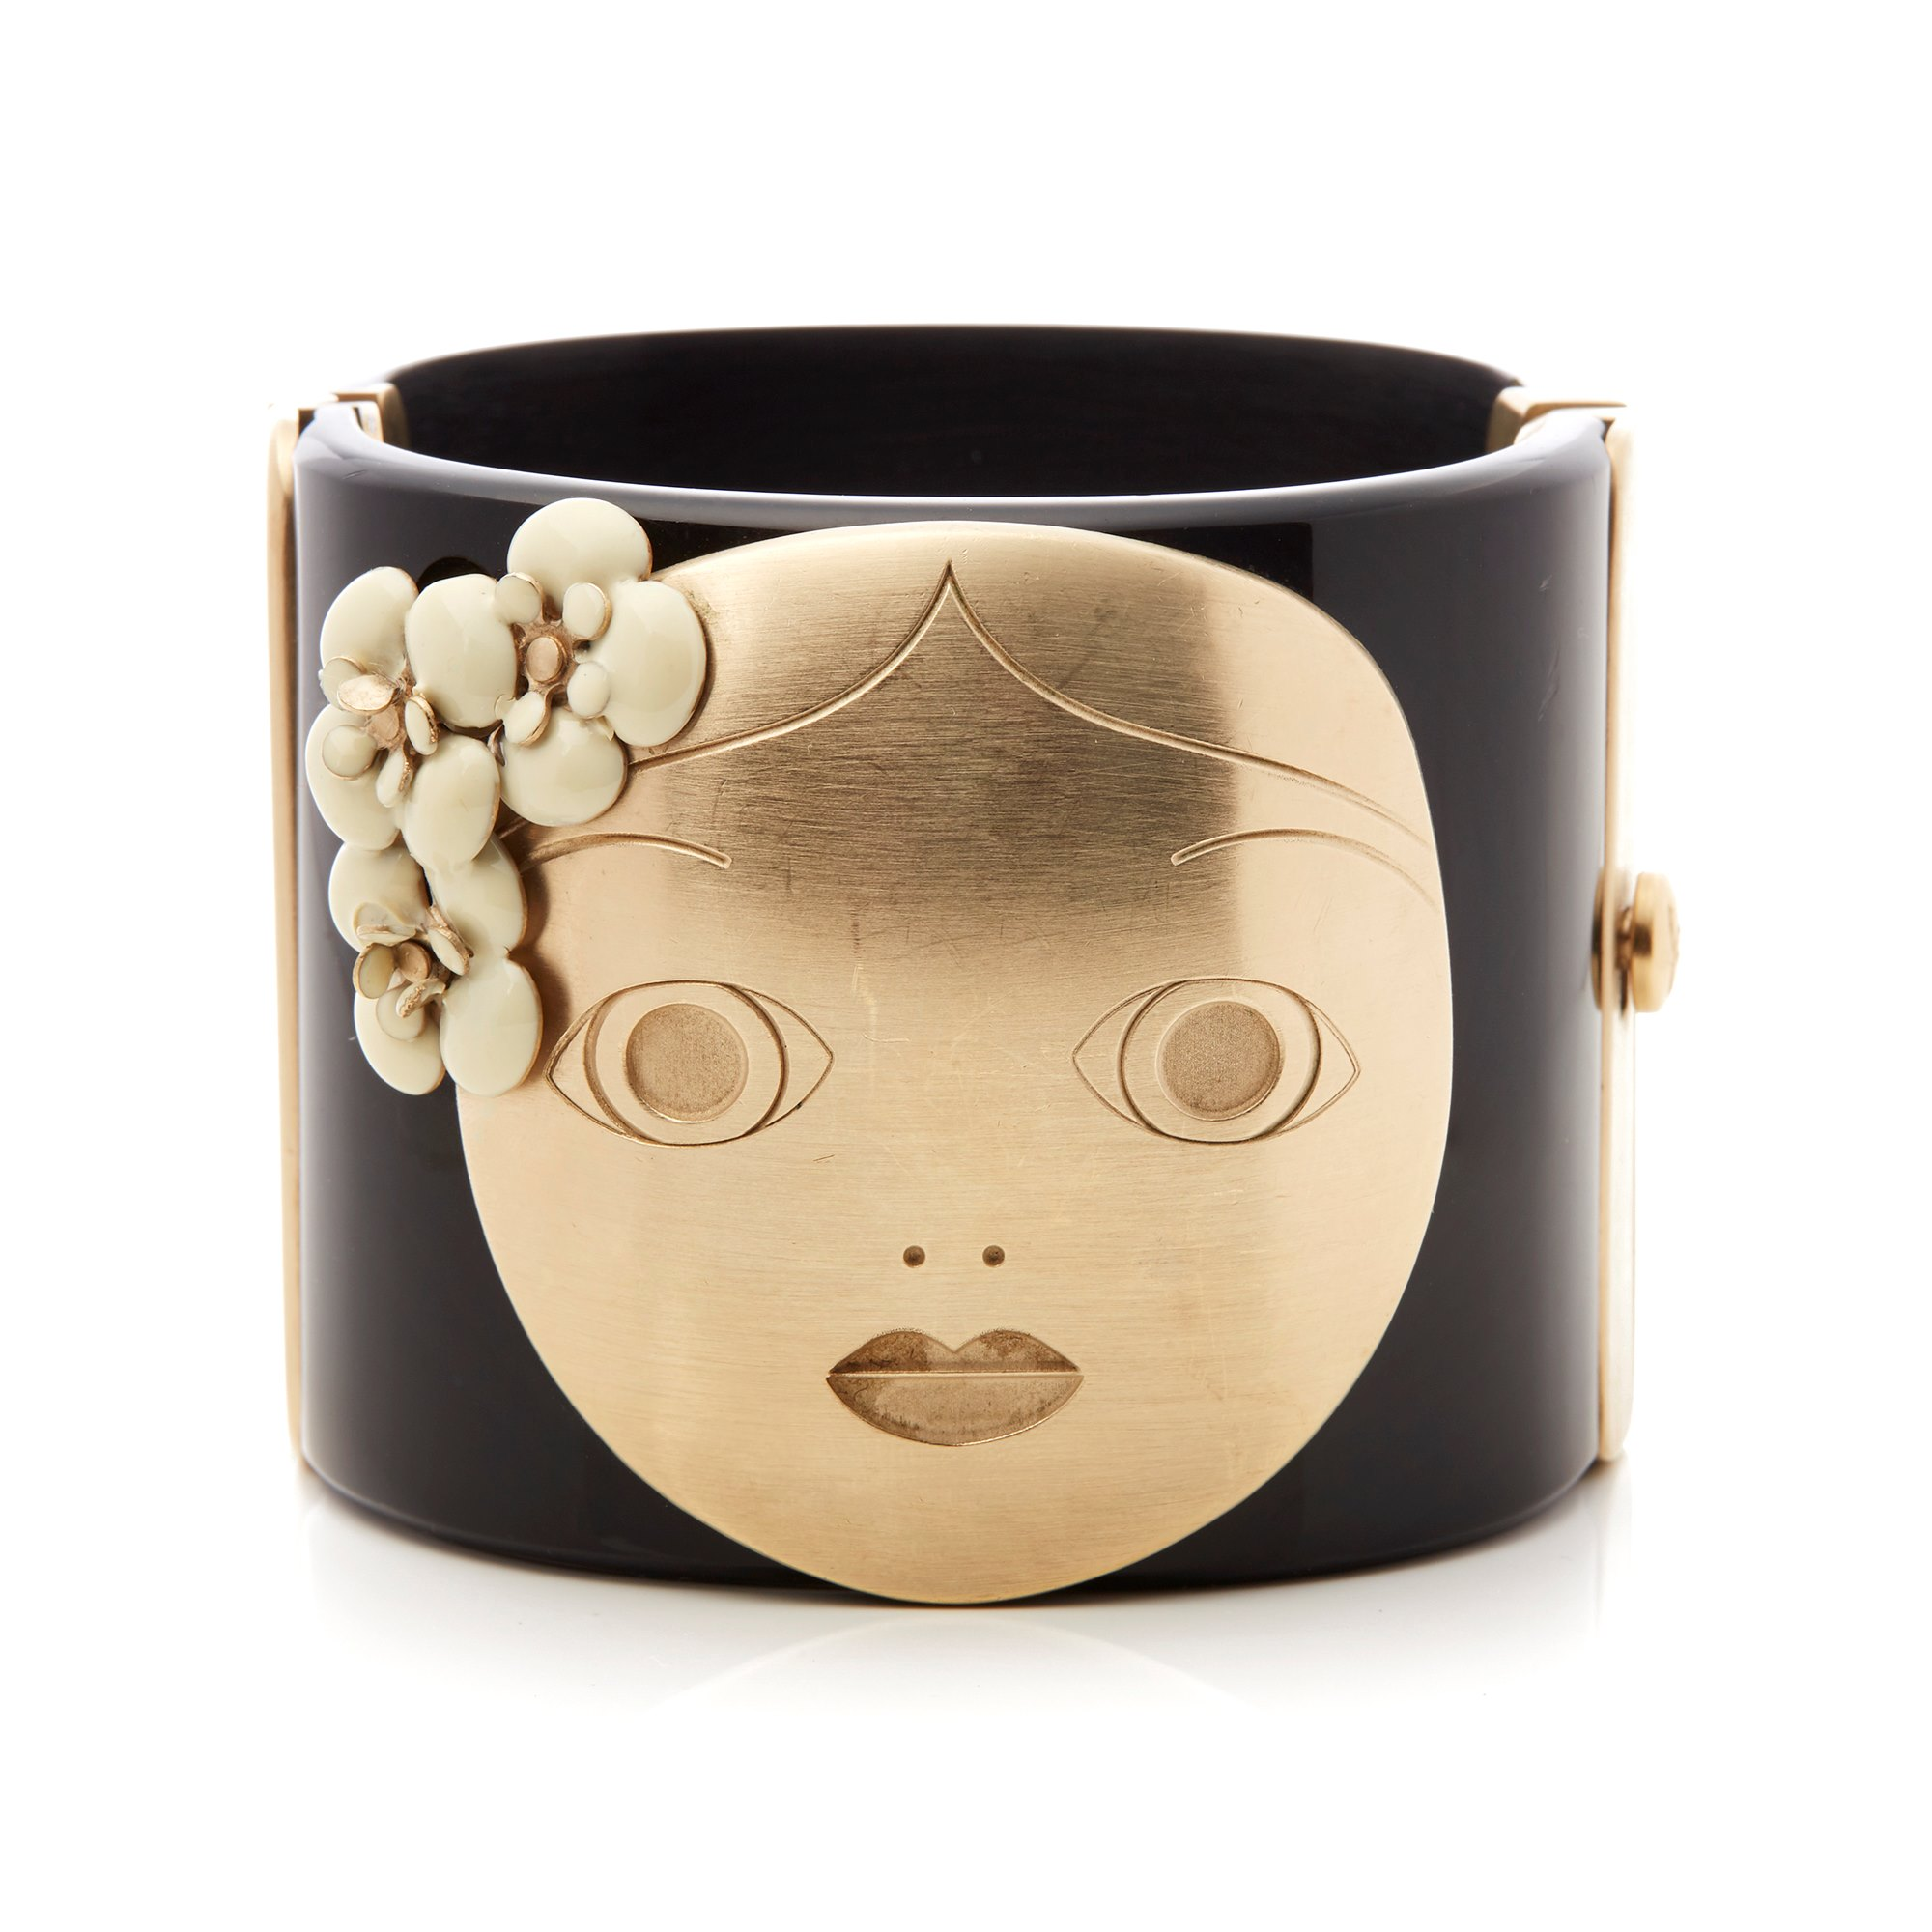 Chanel Black & Gold Tone Paris-Moscou Matryoshka Doll Cuff Bracelet